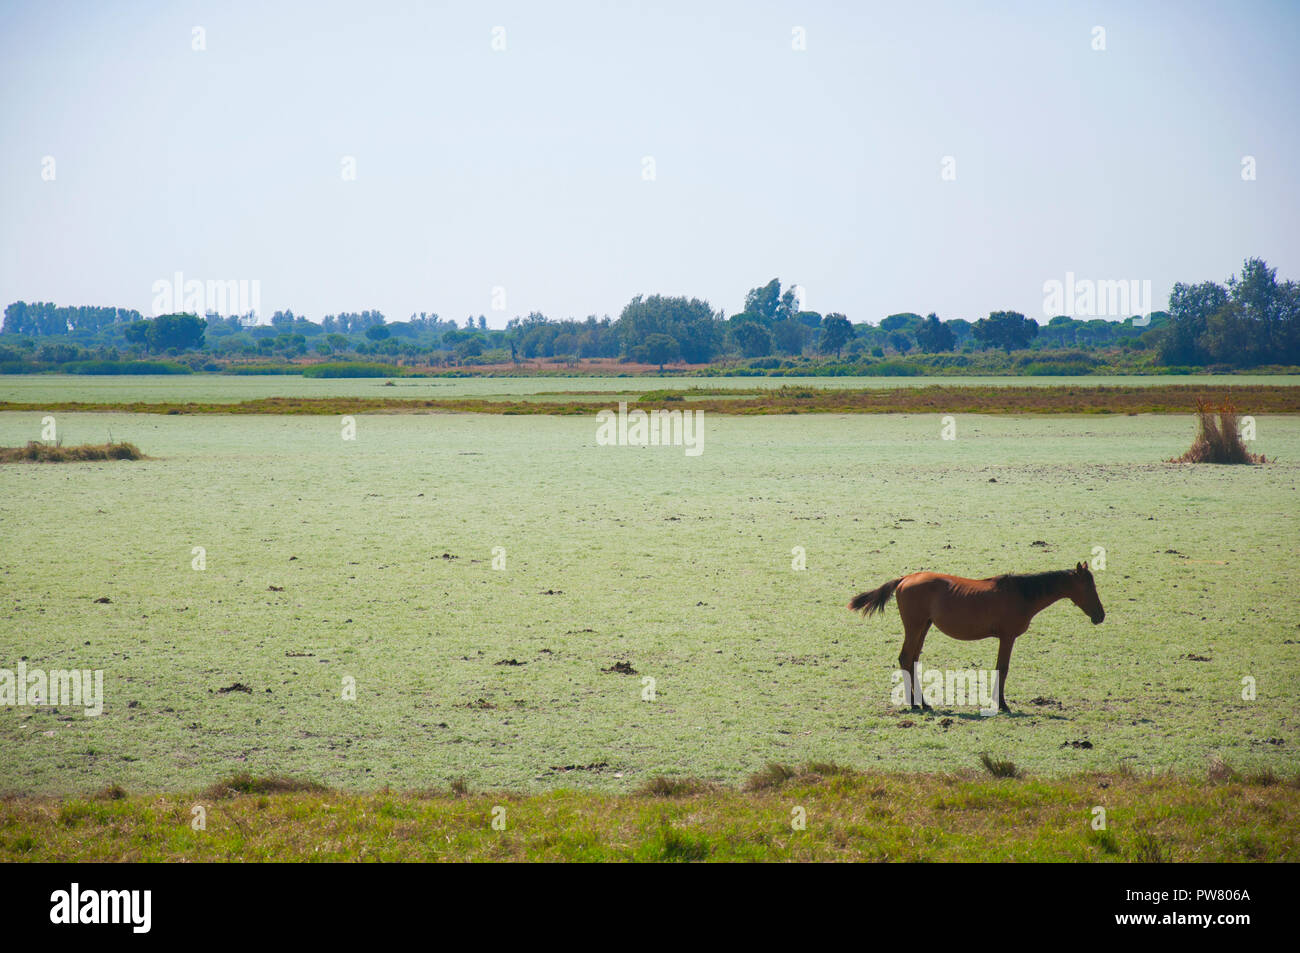 Bay horse alone in the field, summer - Stock Image